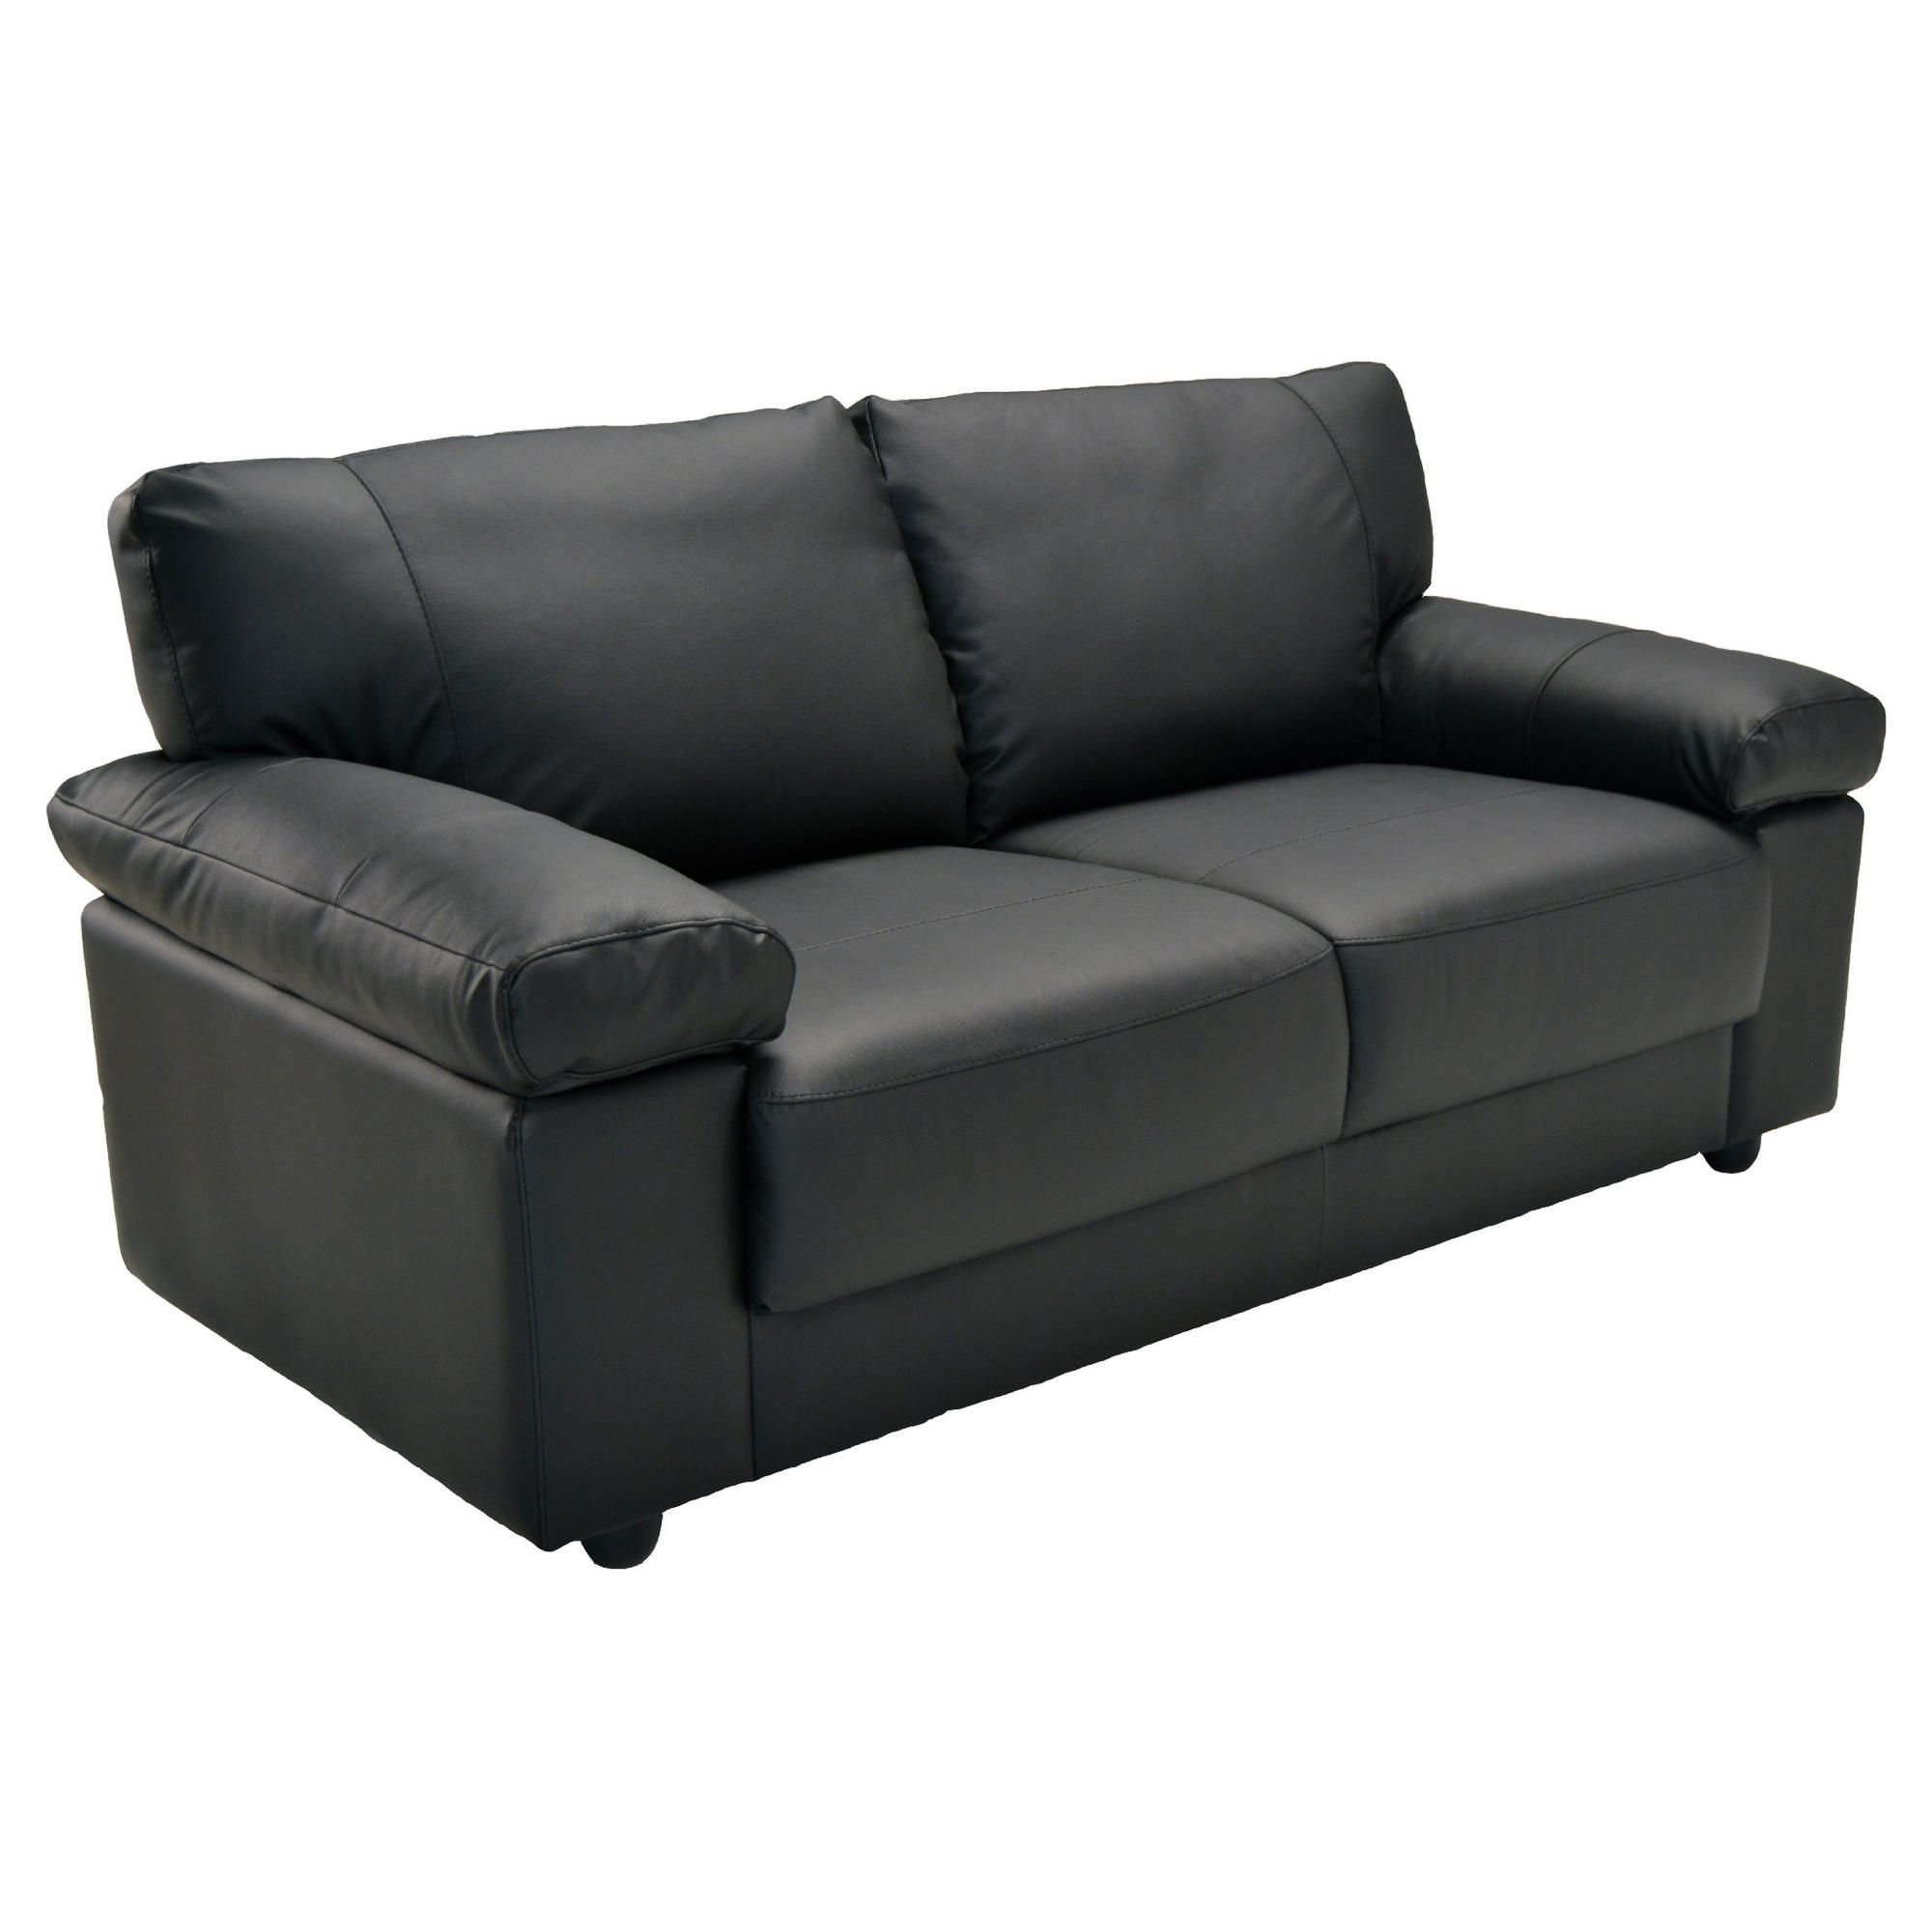 Roma Medium Sofa Black at Tesco Direct